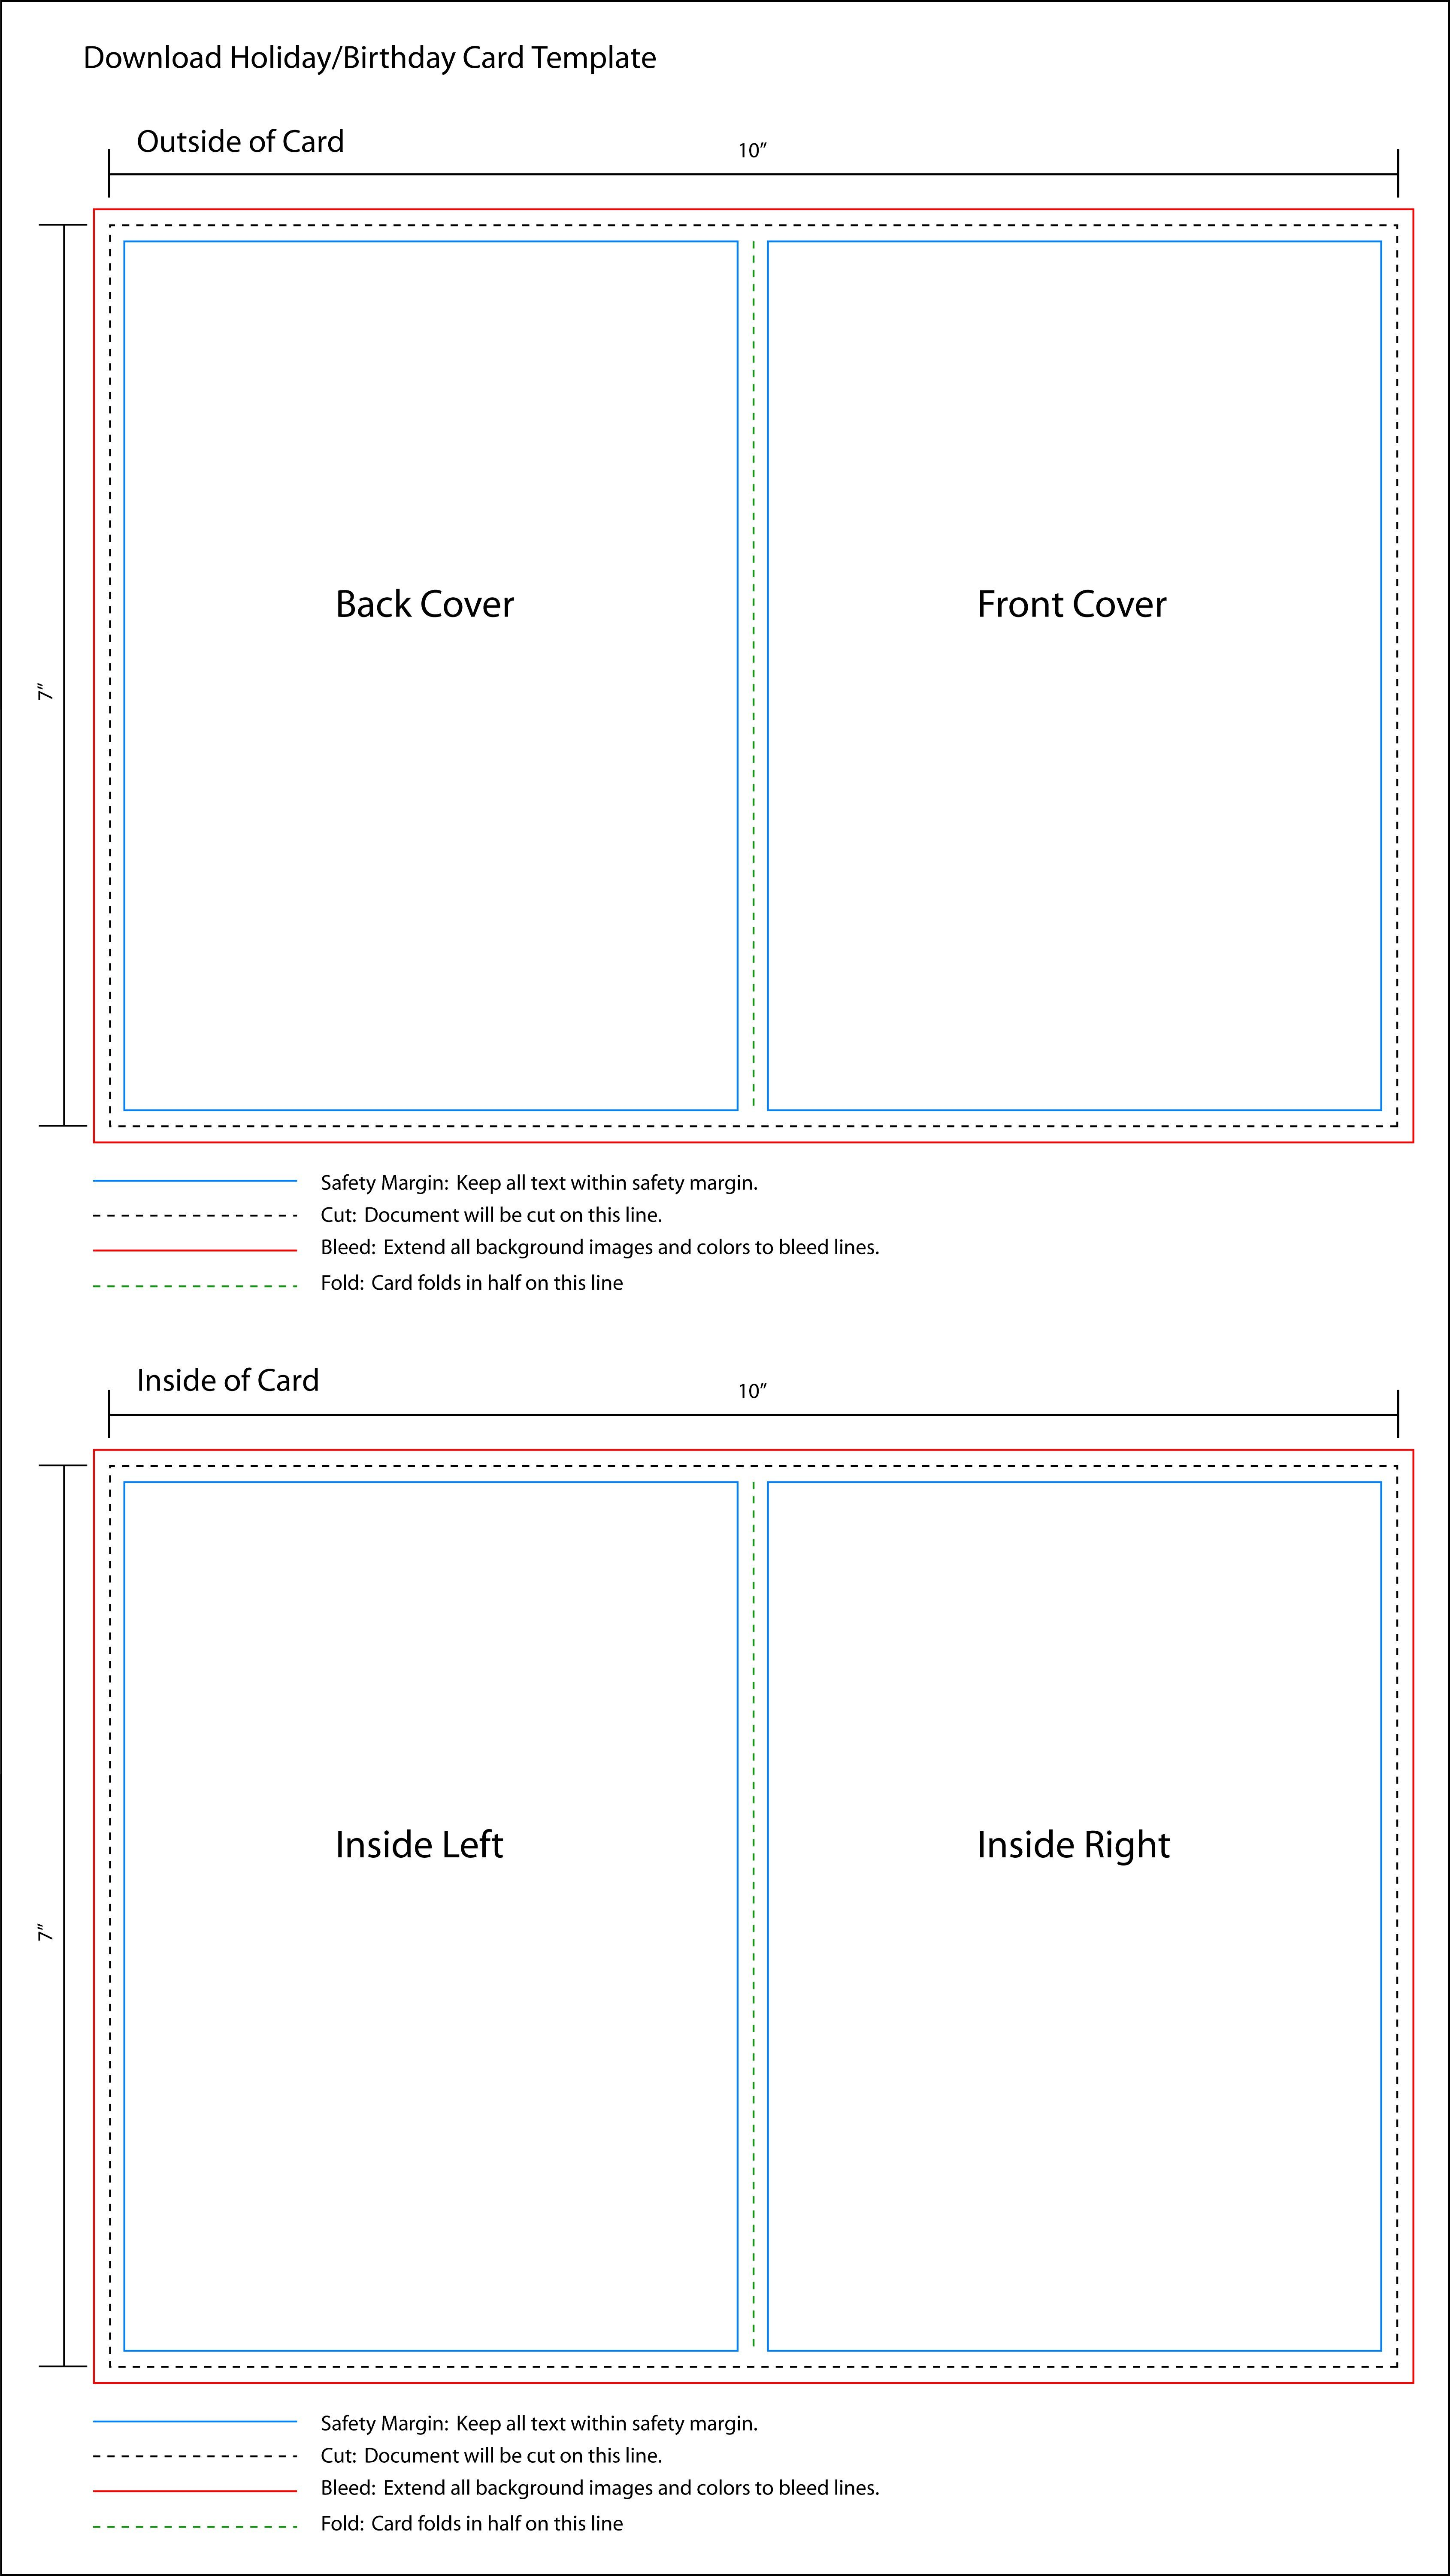 Birthday Card Template Indesign Within Birthday Card Template Indesign 10 Professional Tem Greeting Card Template Card Template Free Greeting Card Templates